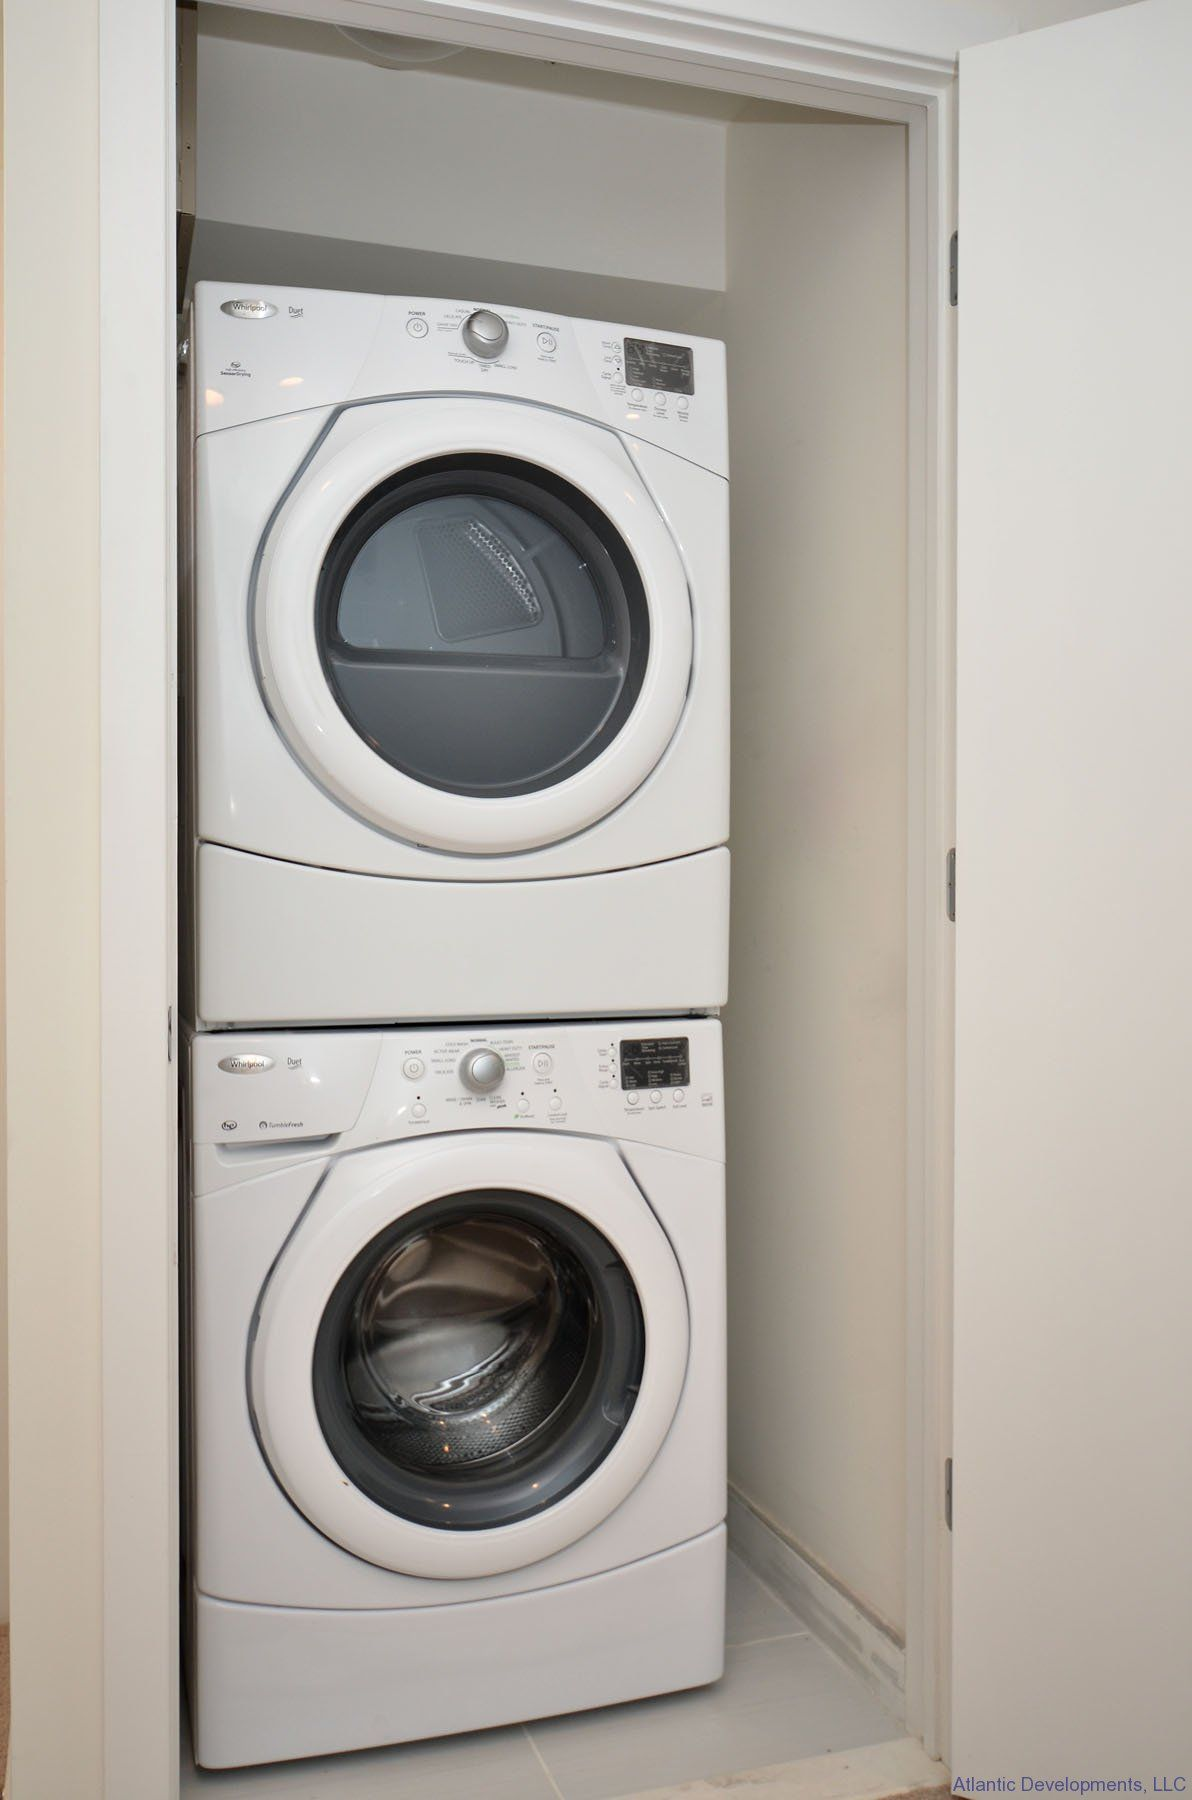 Washer And Dryer Dimensions Google Search Laundry Room Storage